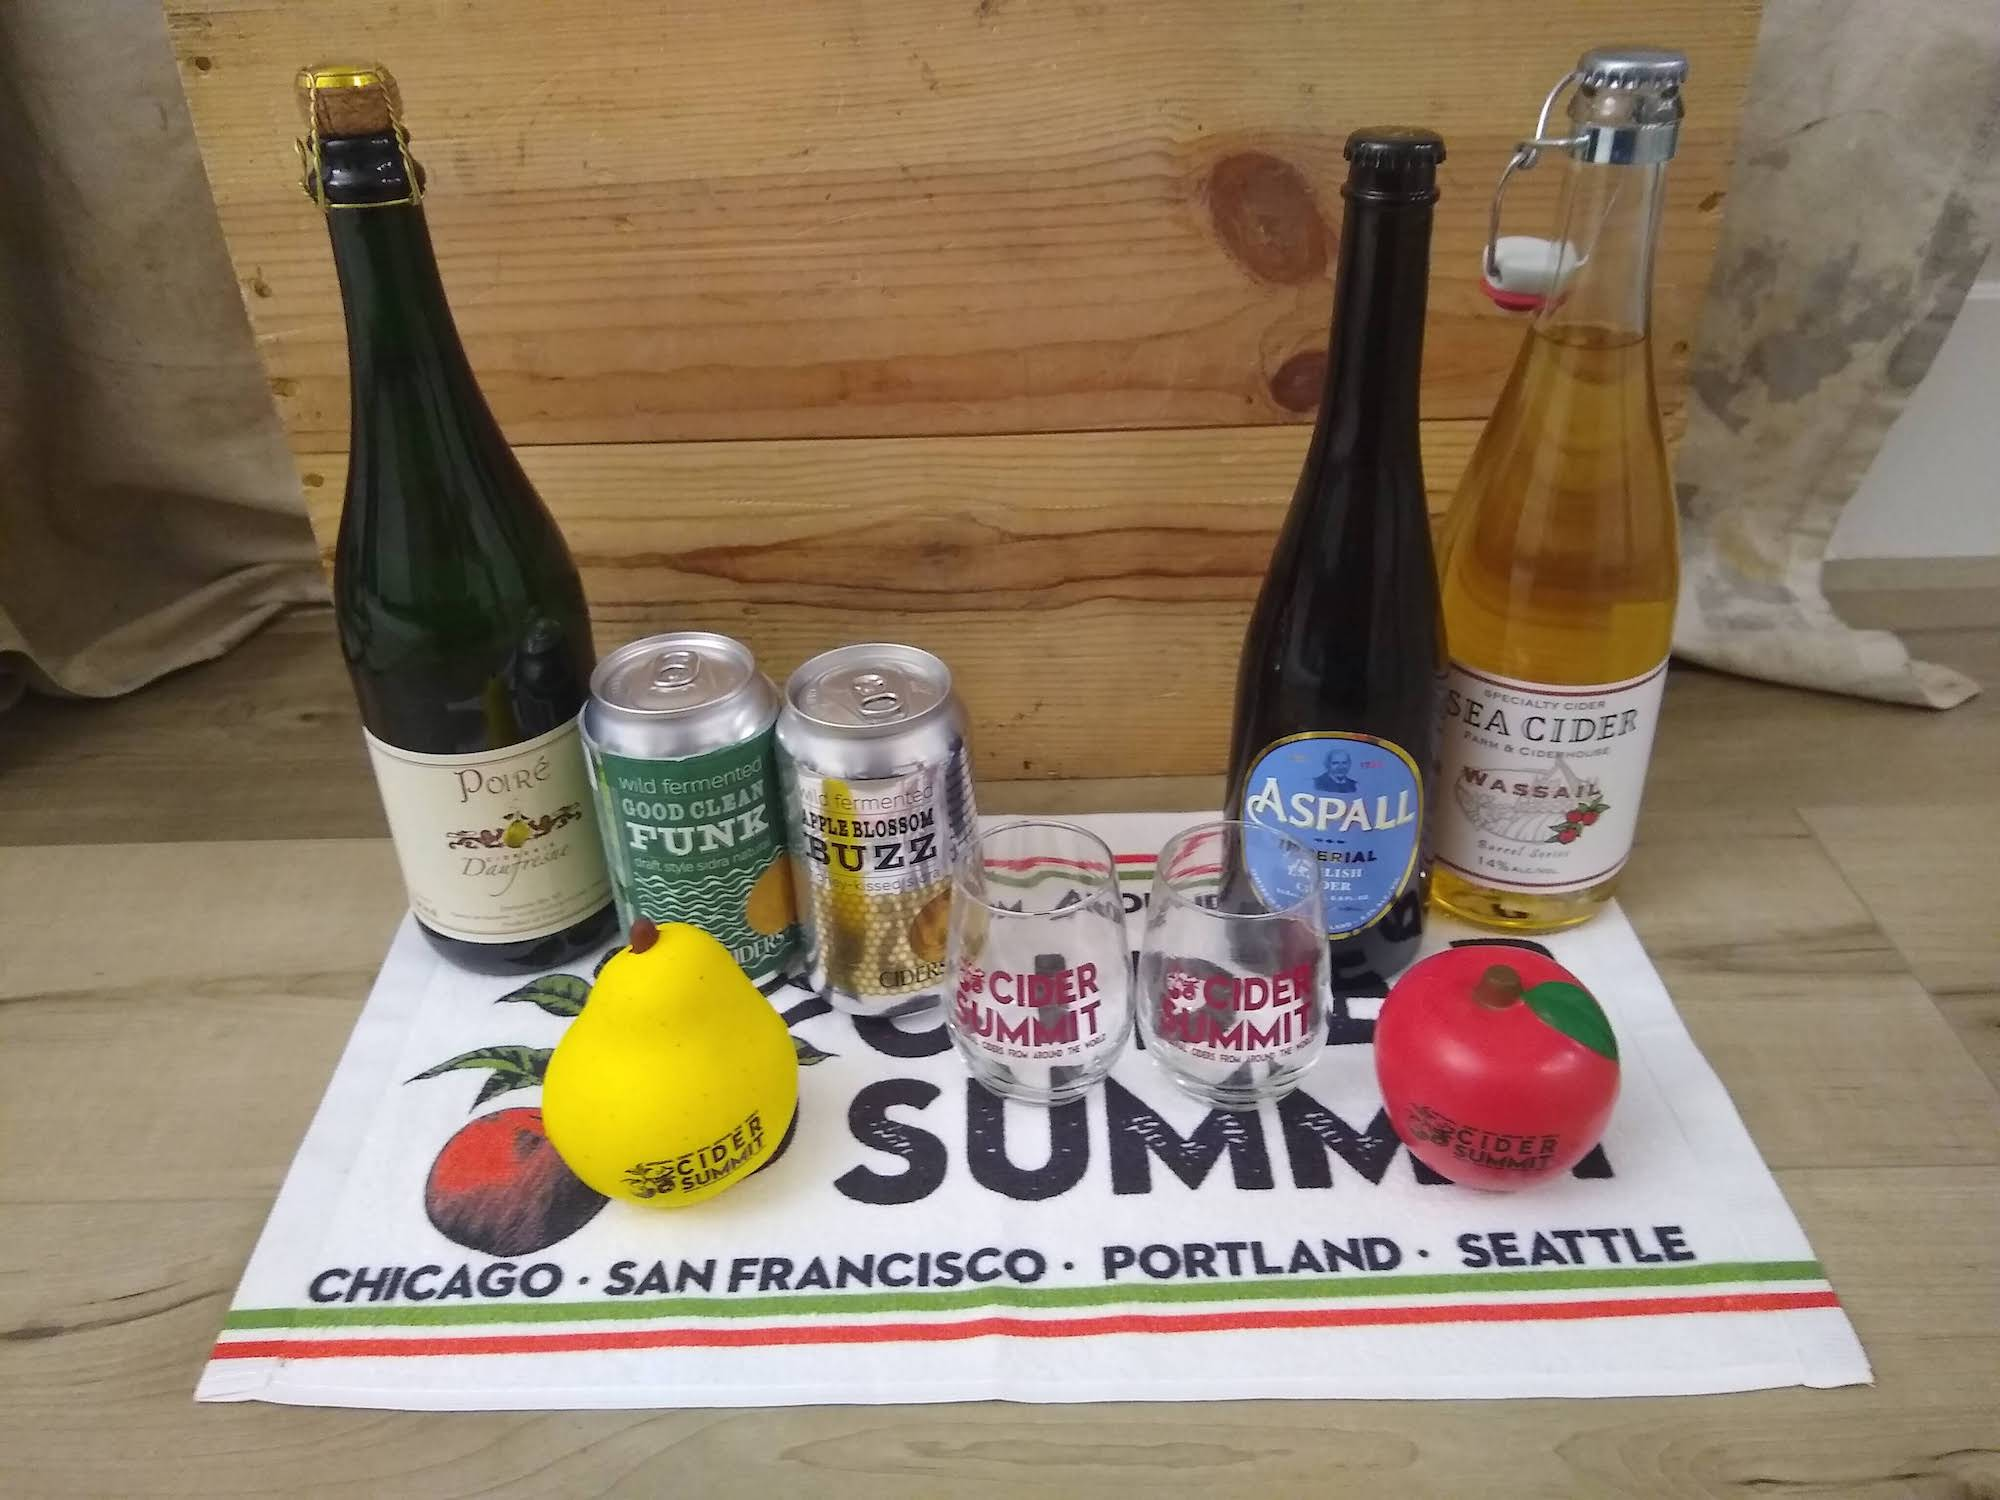 image of Artisanal Import Kit courtesy of Cider Summit